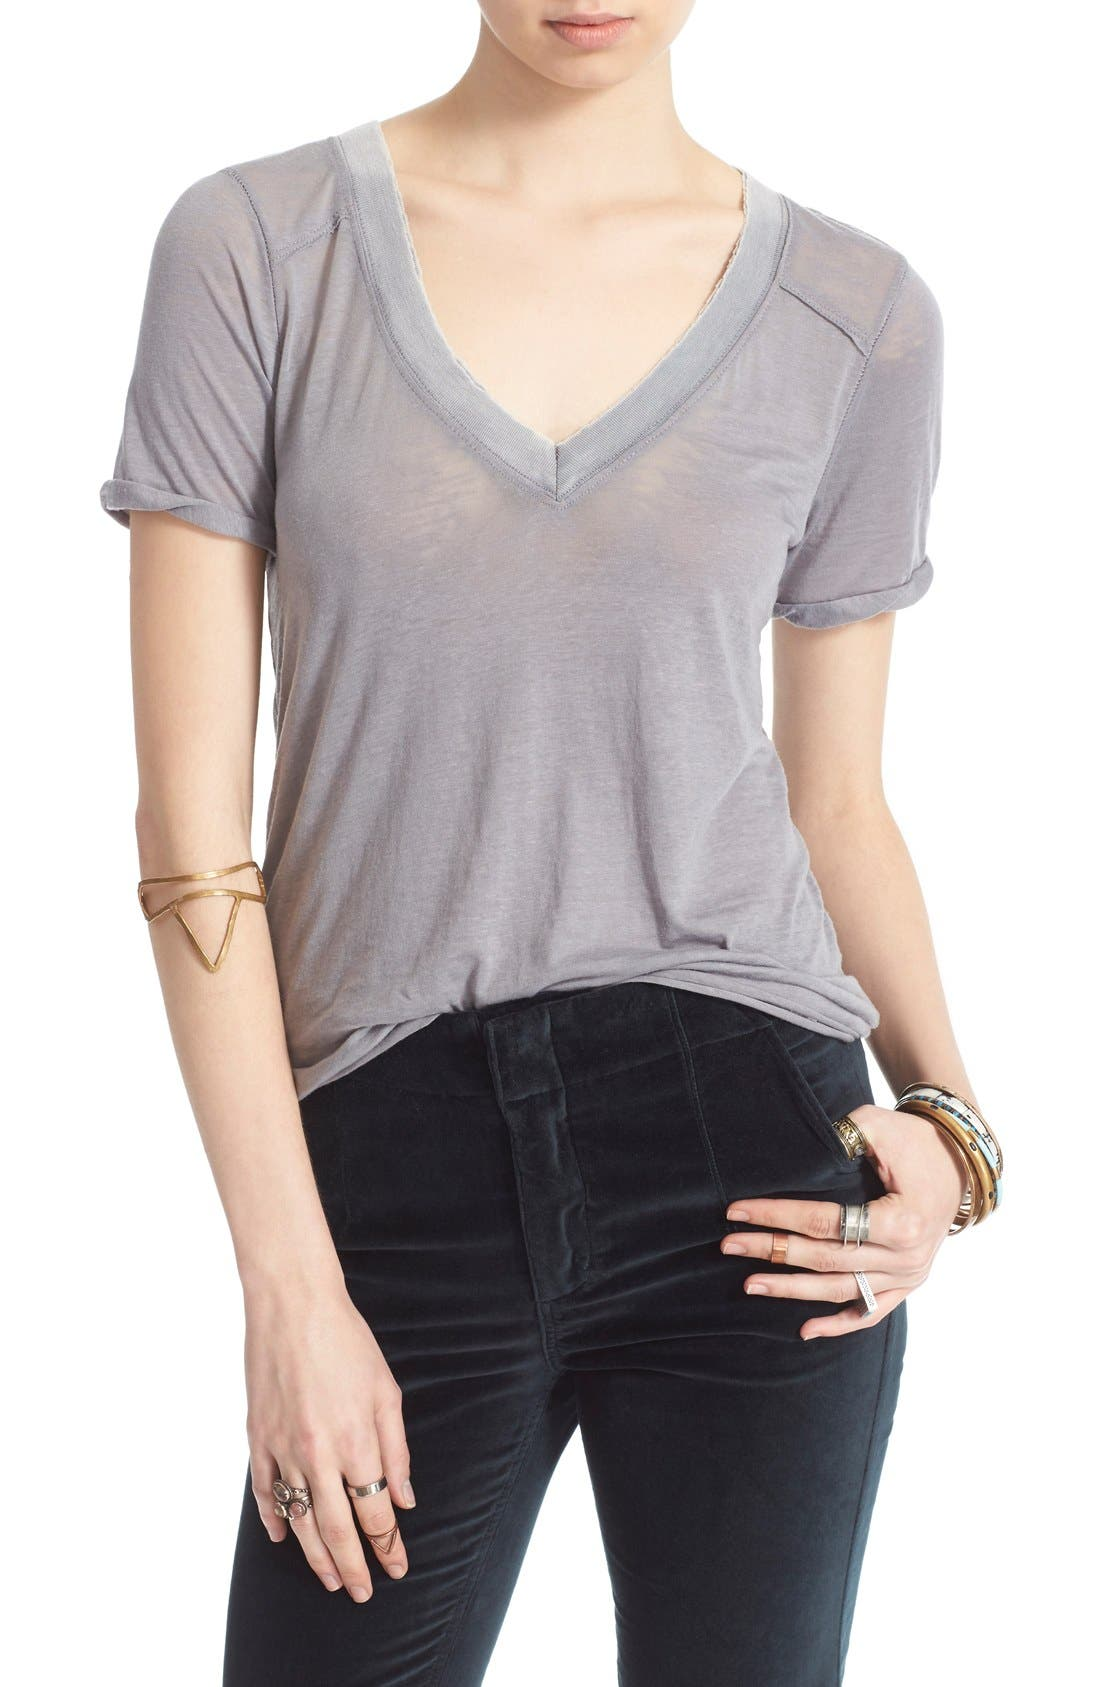 FREE PEOPLE, 'Pearls' Raw Edge V-Neck Tee, Main thumbnail 1, color, 030